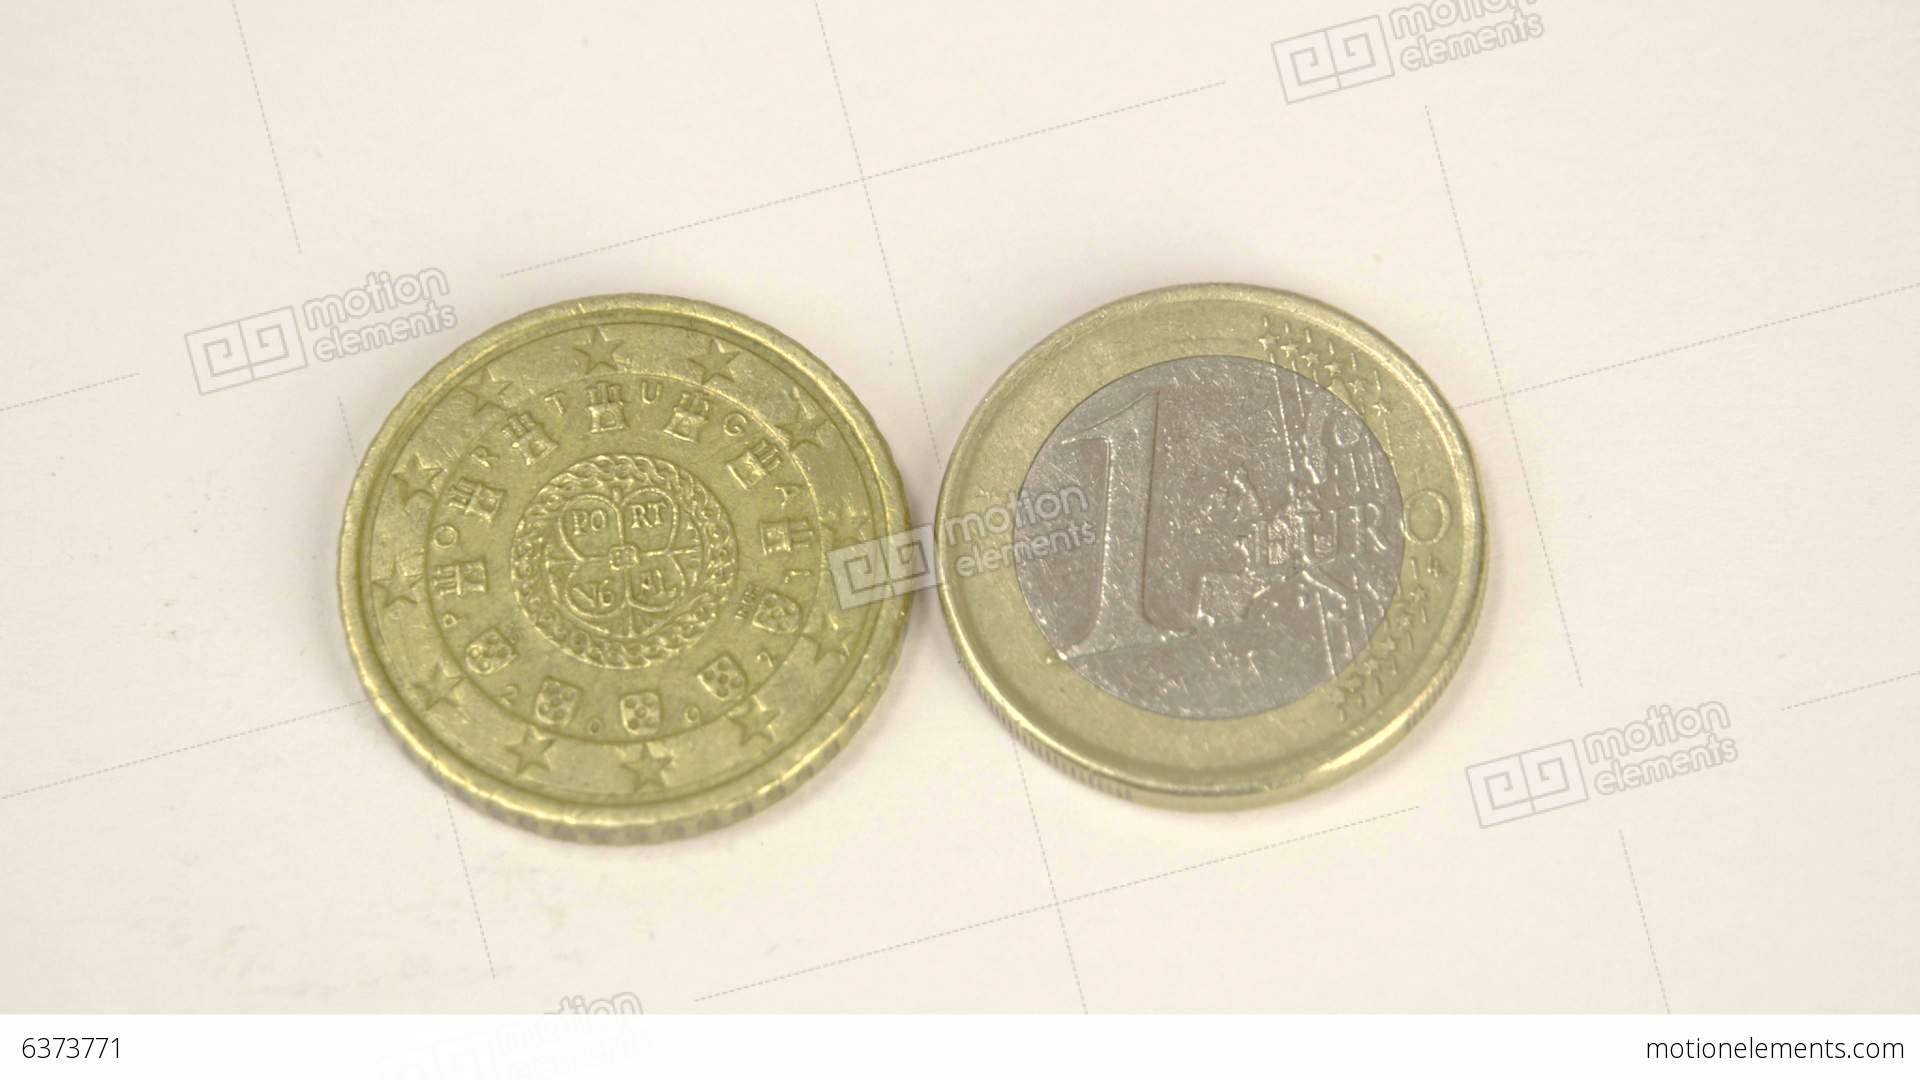 Two Portugal Euro Coins With The Front And Back De